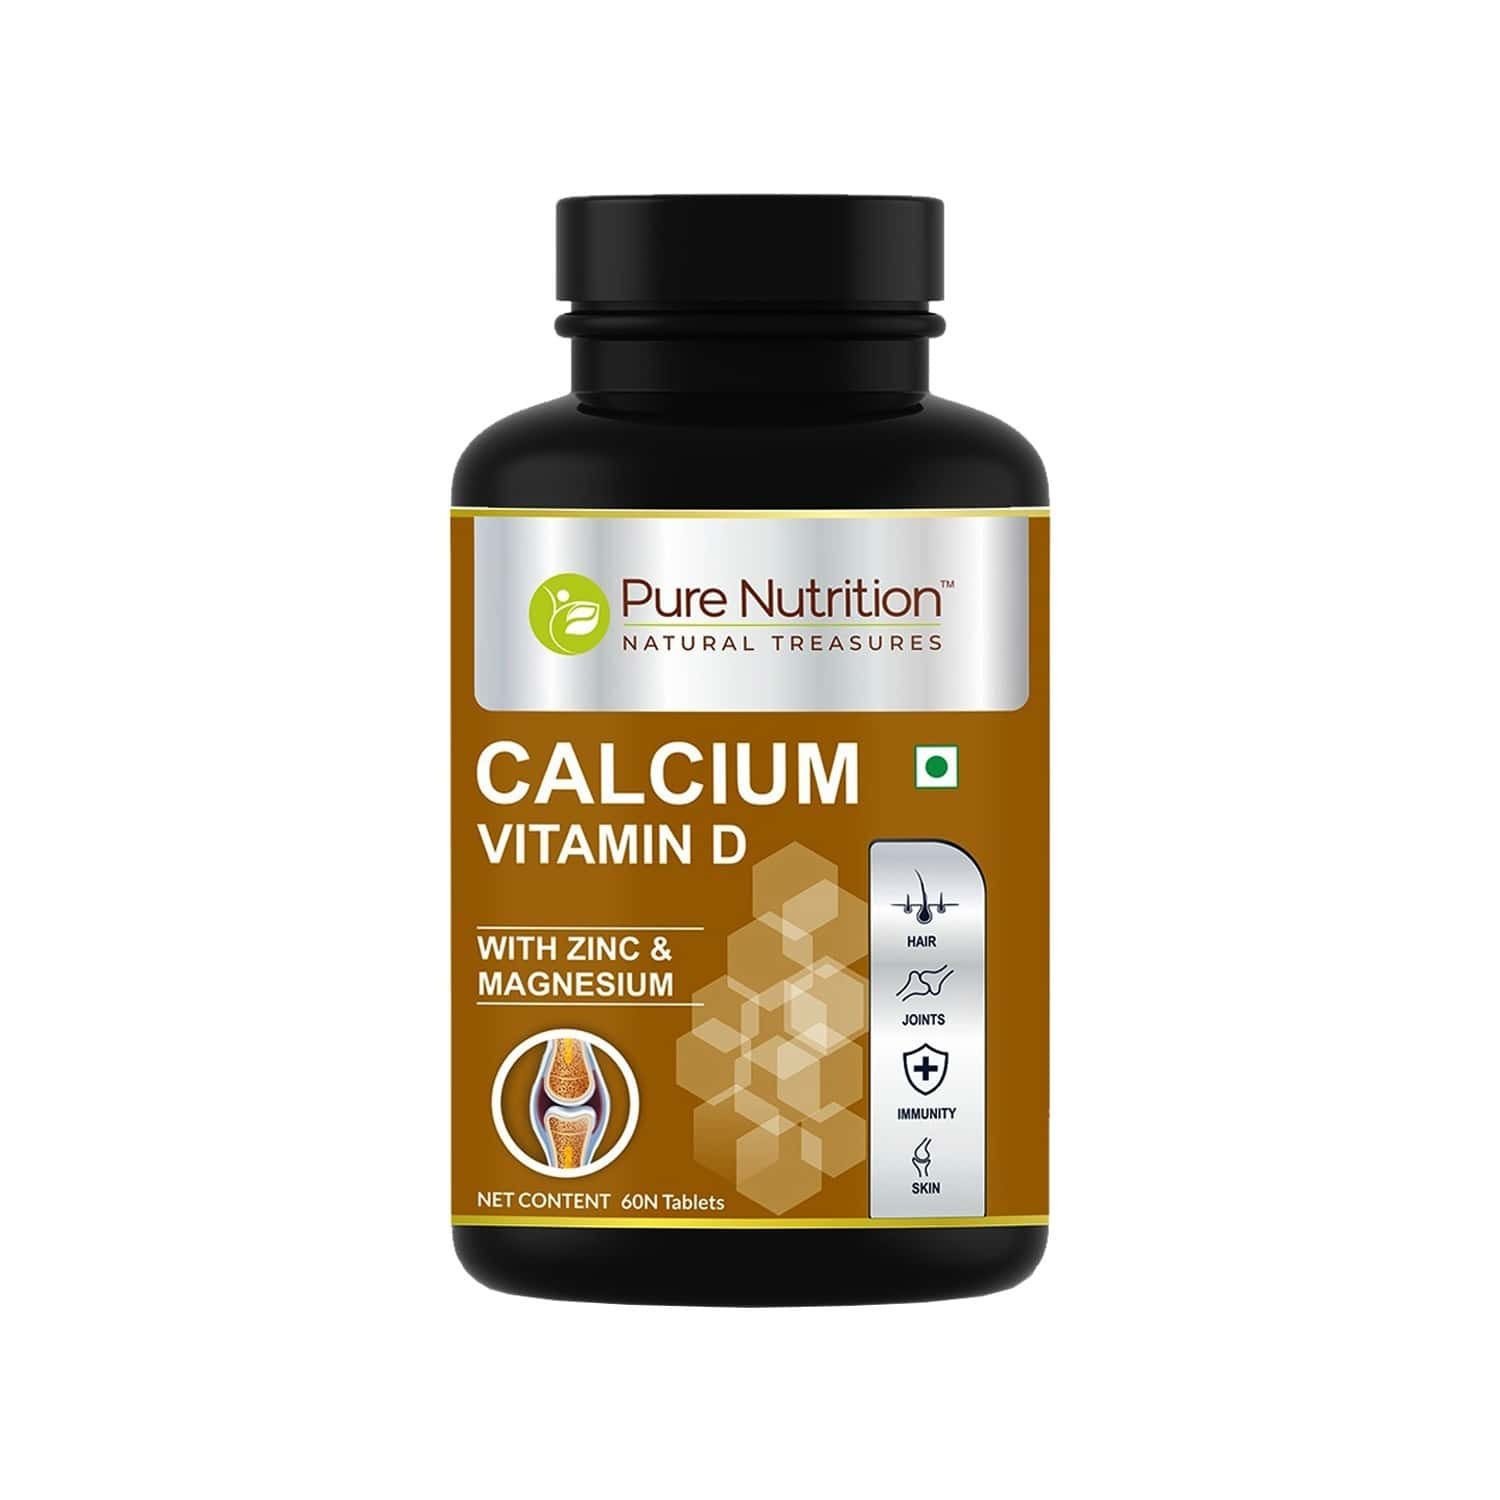 Pure Nutrition Calcium Plus Vitamin D With Magnesium & Zinc - Calcium With D2 - Supports Strong Bones And Immune Health - 60 Tablets